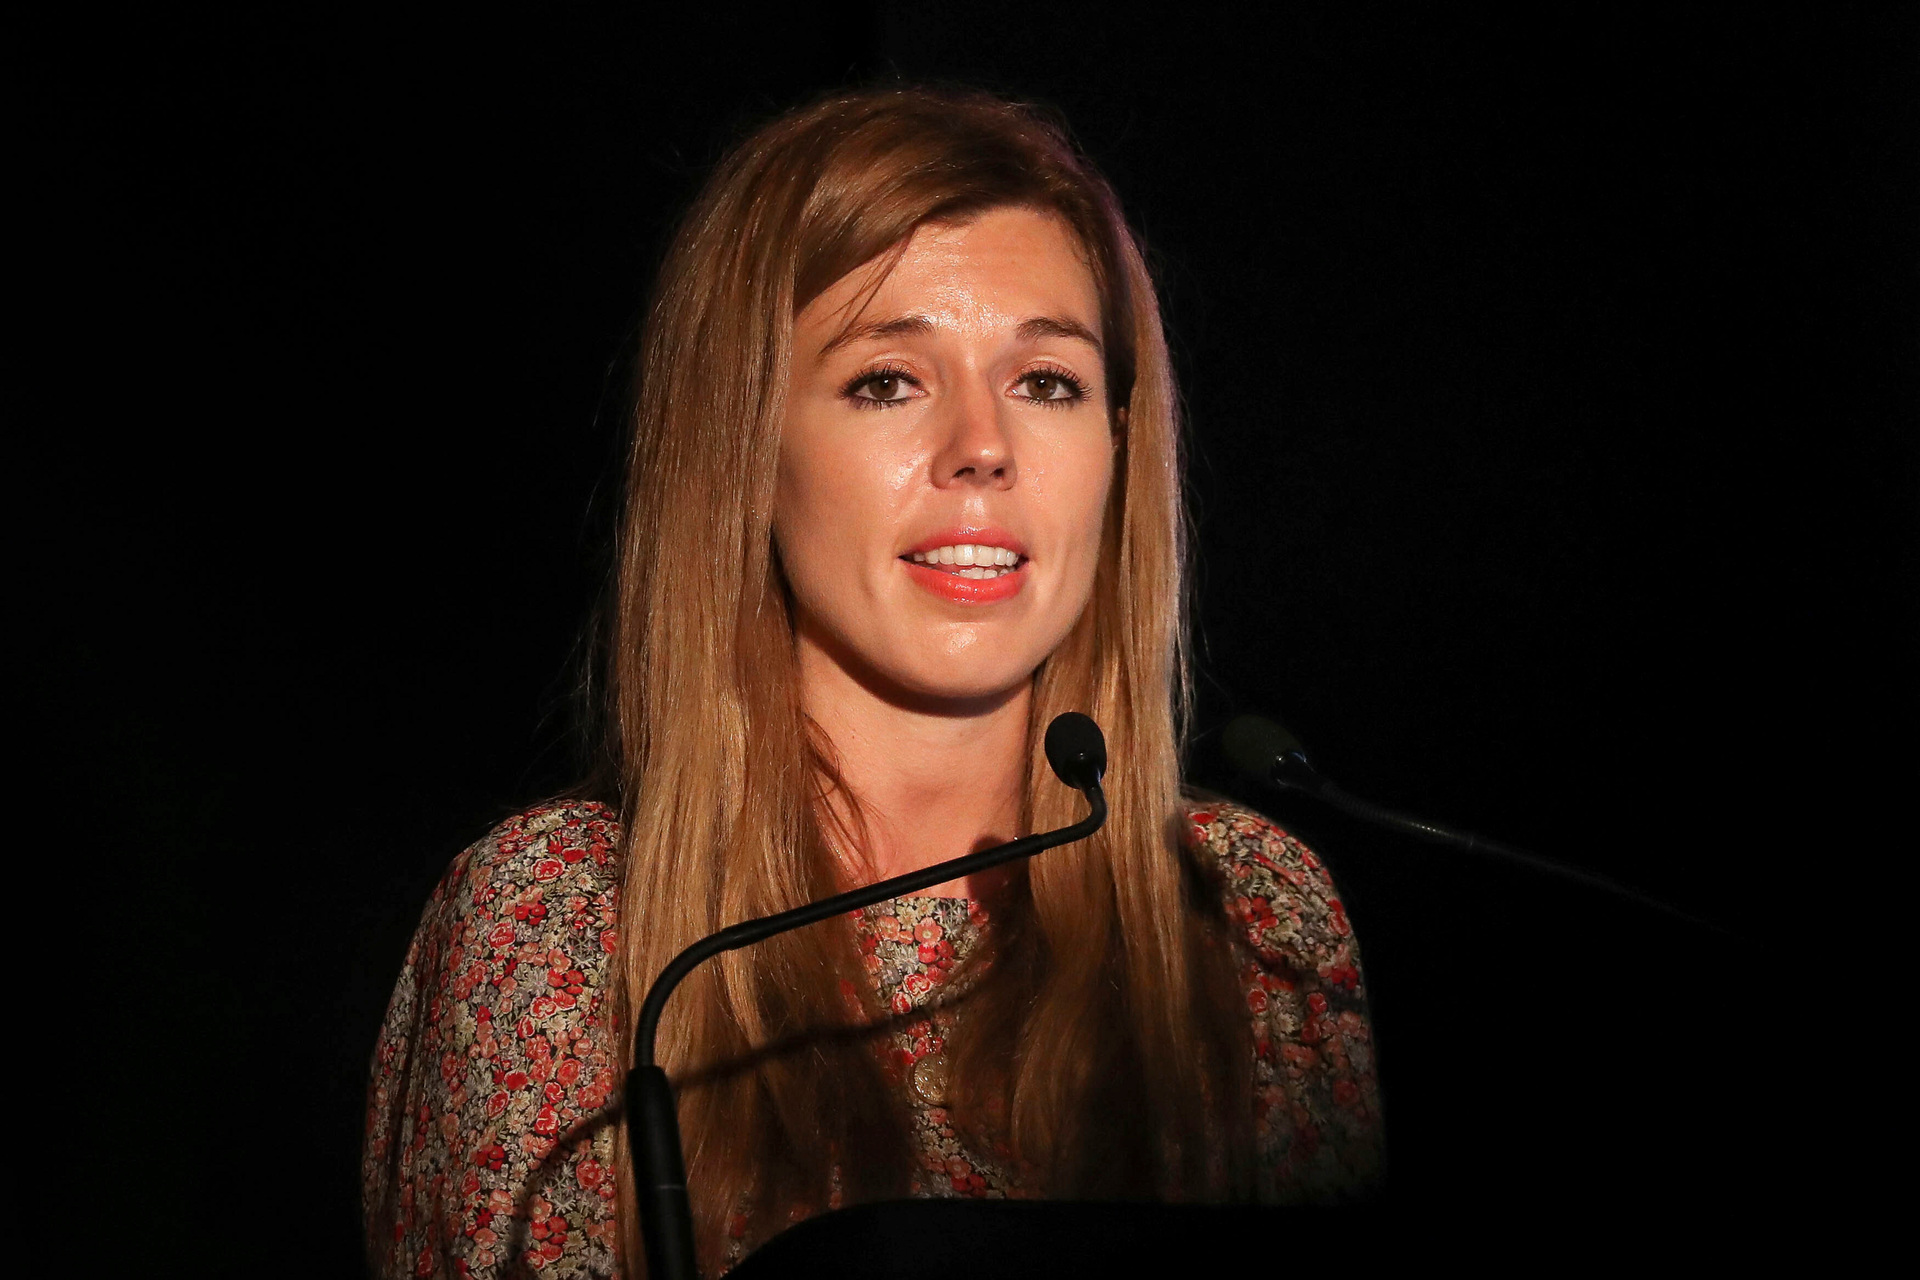 Carrie Symonds, girlfriend of British PM Boris Johnson, has been denied a visa to the US